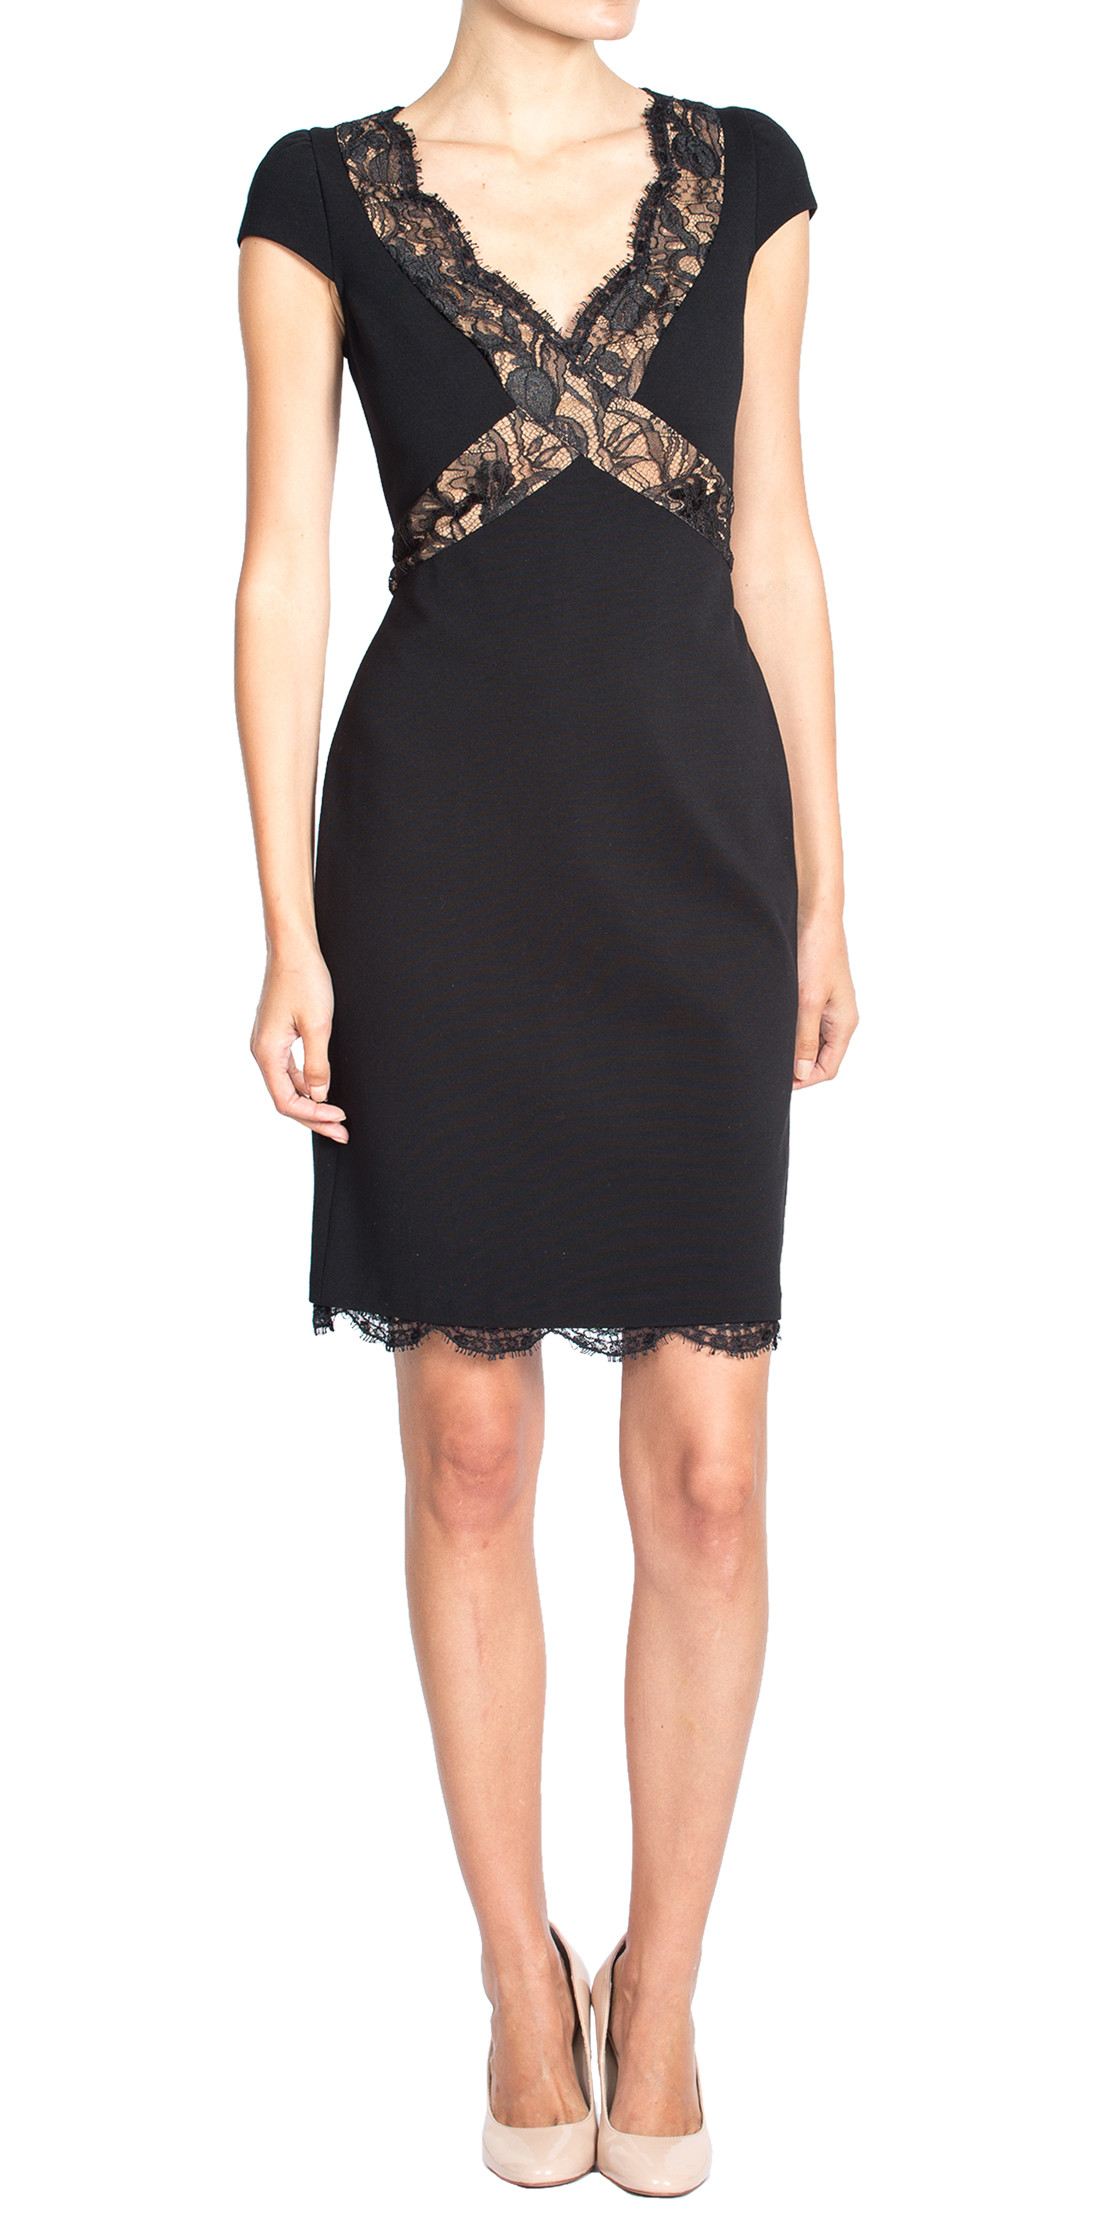 Emilio Pucci Scalloped Neckline Dress